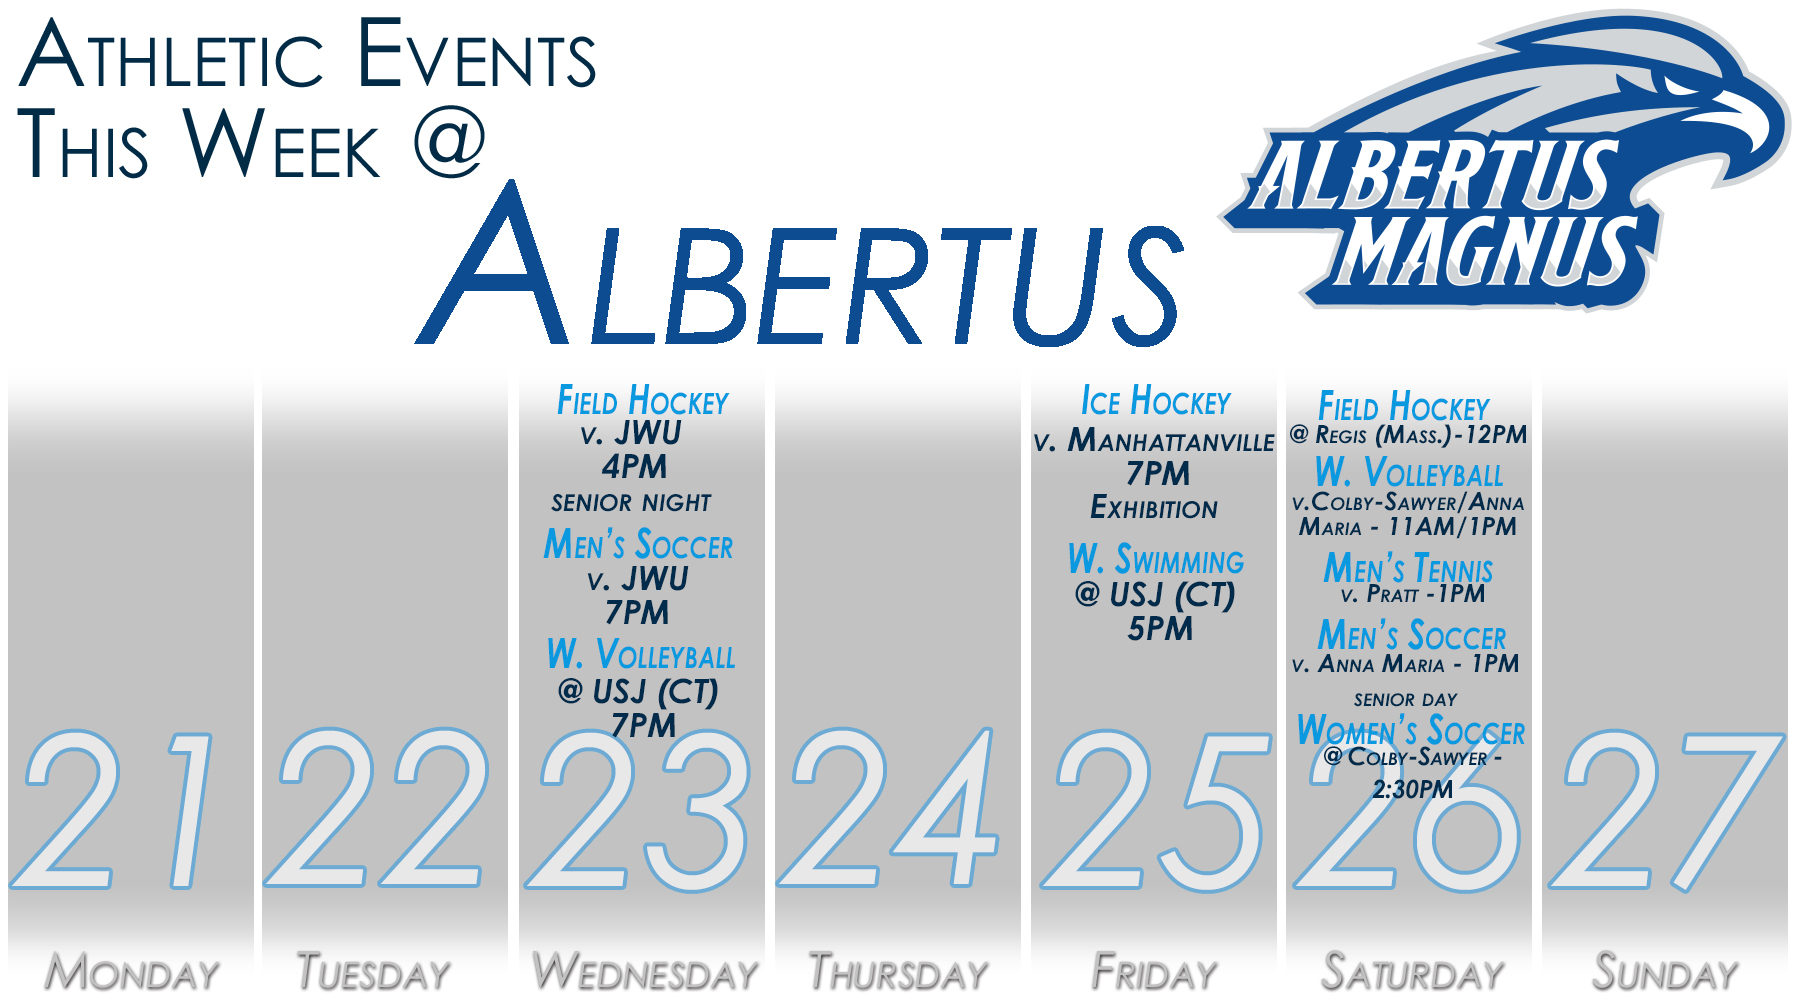 Albertus Magnus Athletics - Weekly Schedule (Oct. 21 - Oct. 27)